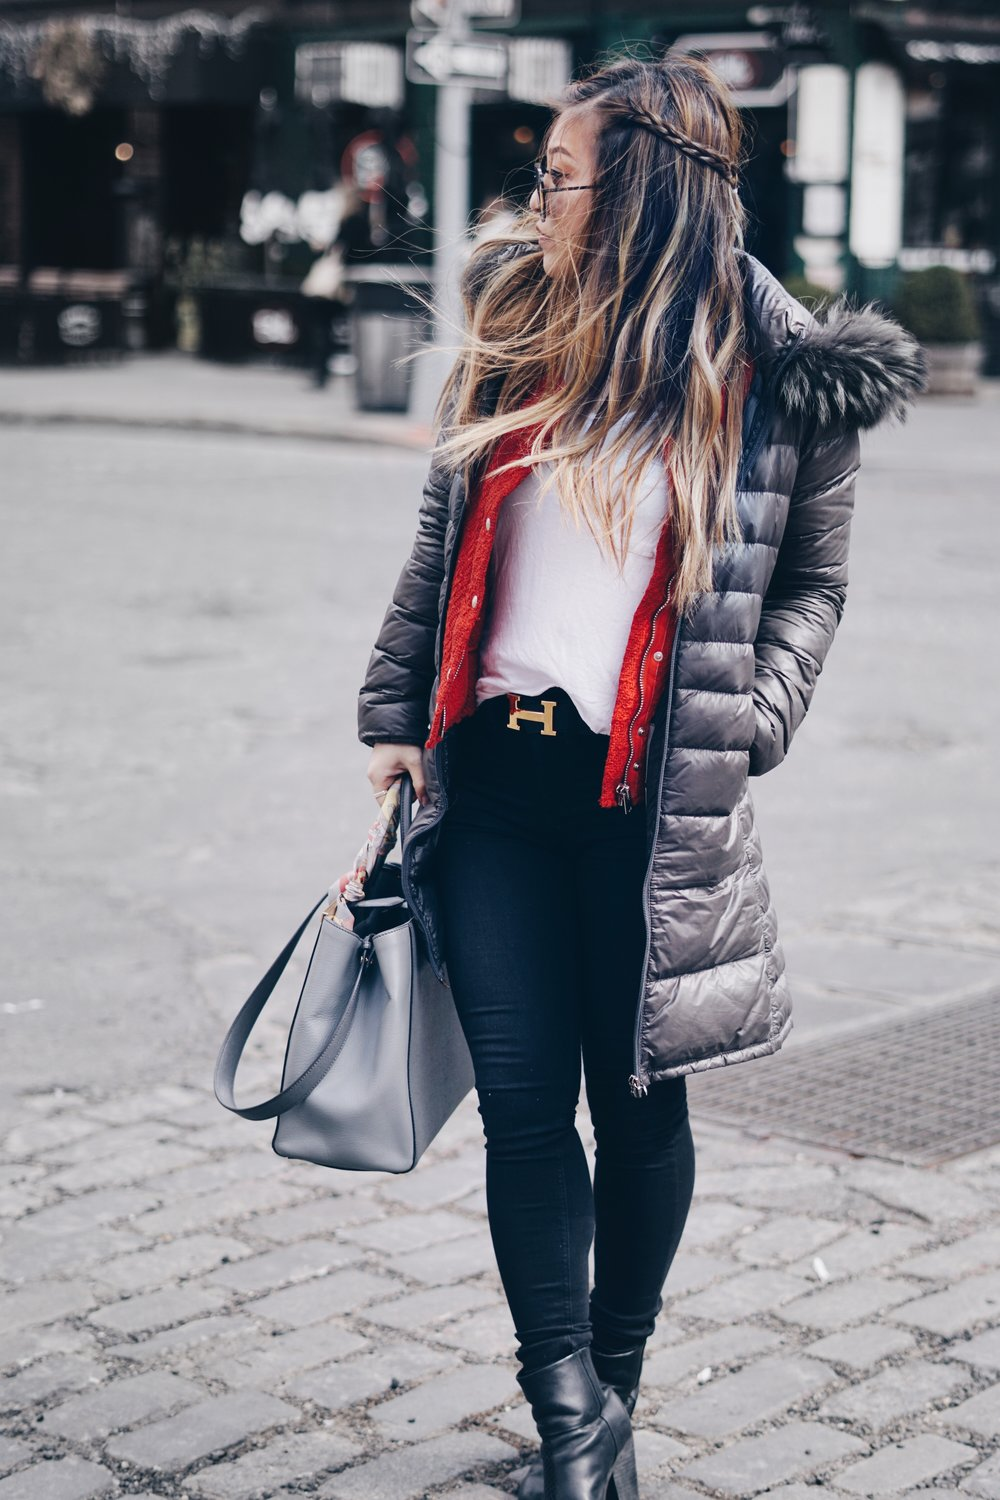 Down Jacket: Duvetica | Tweed Jacket:  IRO  | Shirt: H&M | Jeans:  Rag & Bone  | Booties: Rag & Bone | Purse:  Fendi  | Sunglasses:  Quay Australia  | Belt:  Hermes